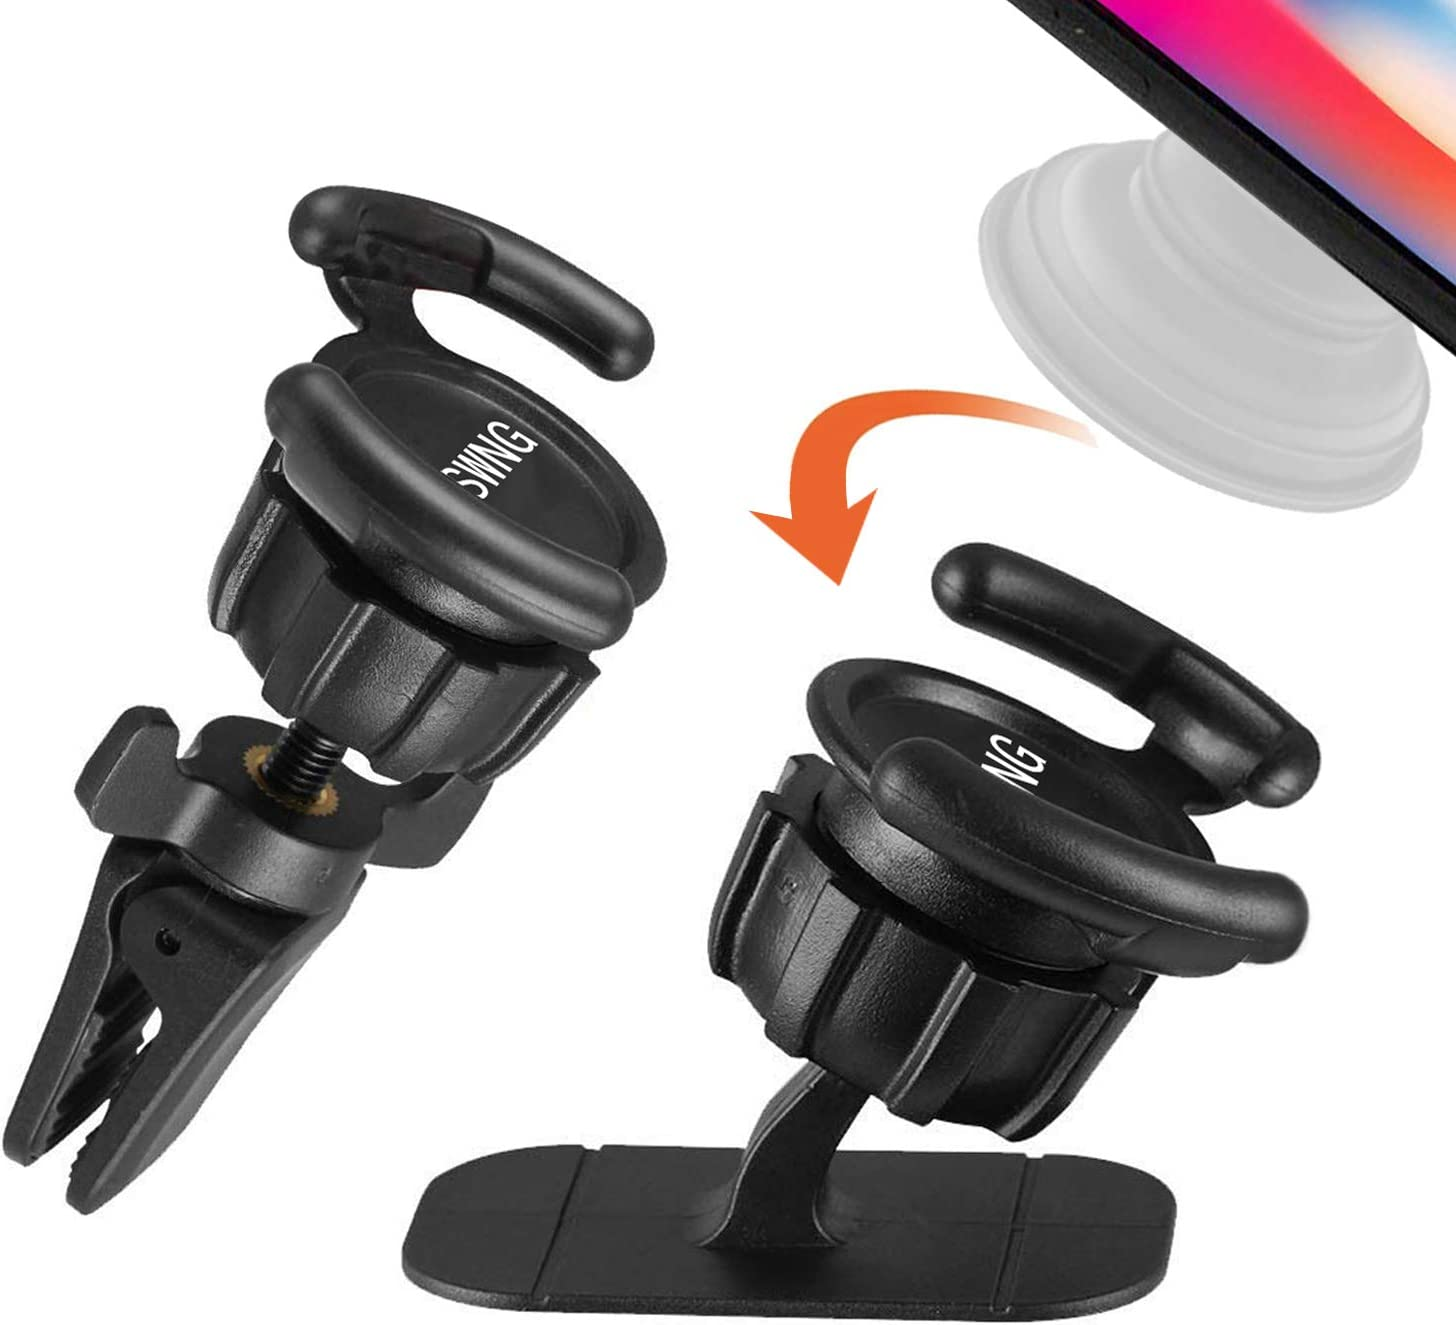 2 Pack Universal Air Vent Car Mount and Dashboard Sticker Holder KSWNG 360/° Rotation Clip Car Mount Phone Holder with Adjustable Switch Lock for Smartphones GPS Navigation